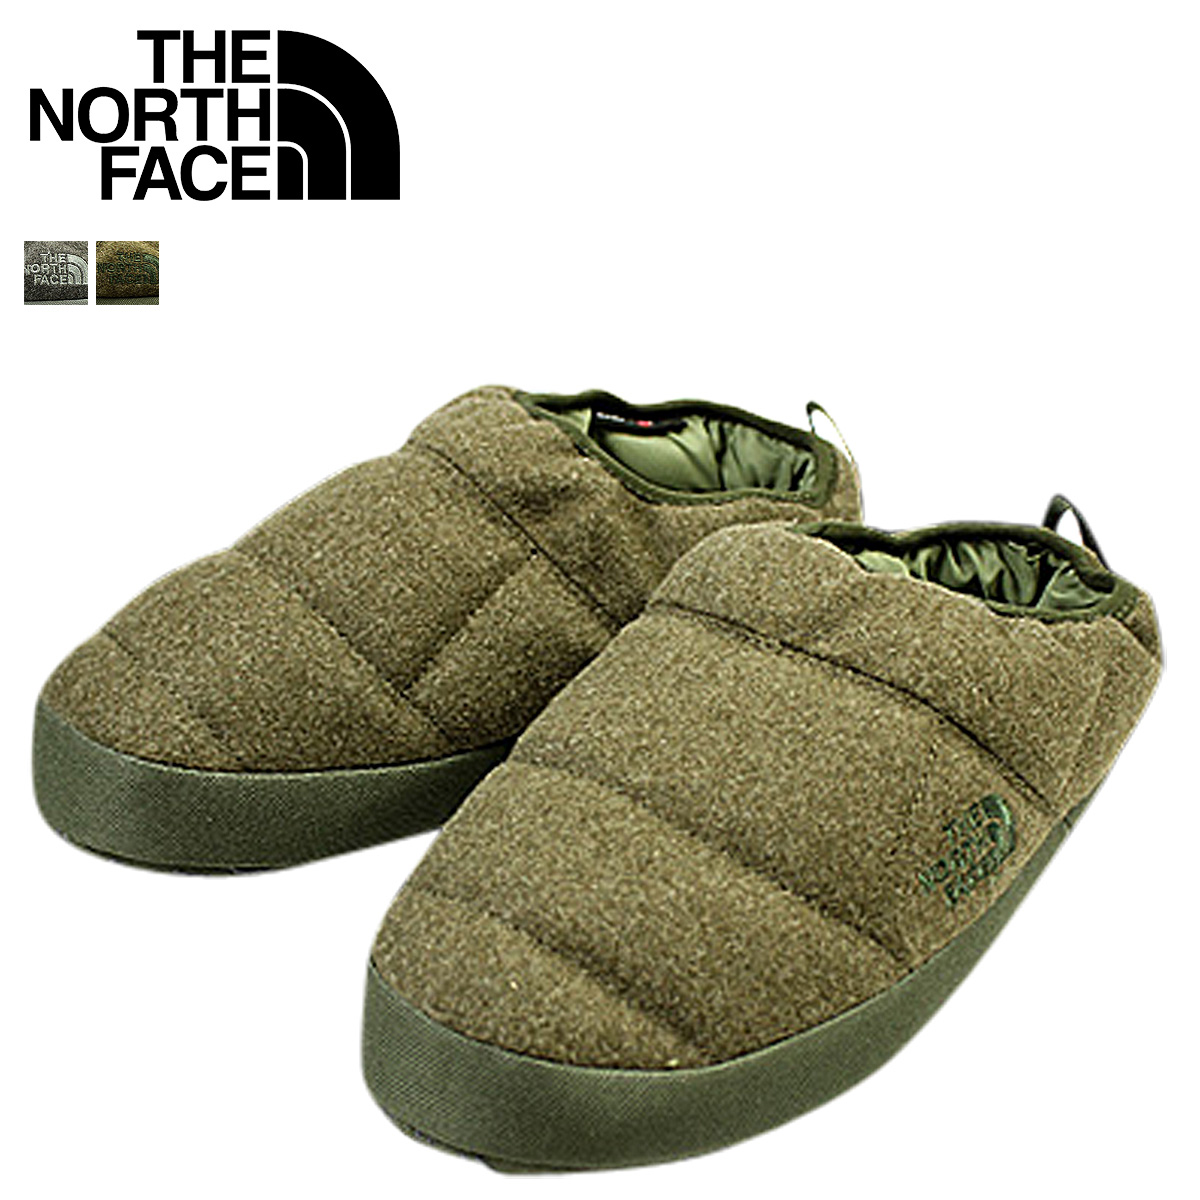 e49a7d5fc North Face THE NORTH FACE room shoes tent mule slippers 2 color MEN'S NSE  TENT MULE III SPECIAL EDITION men